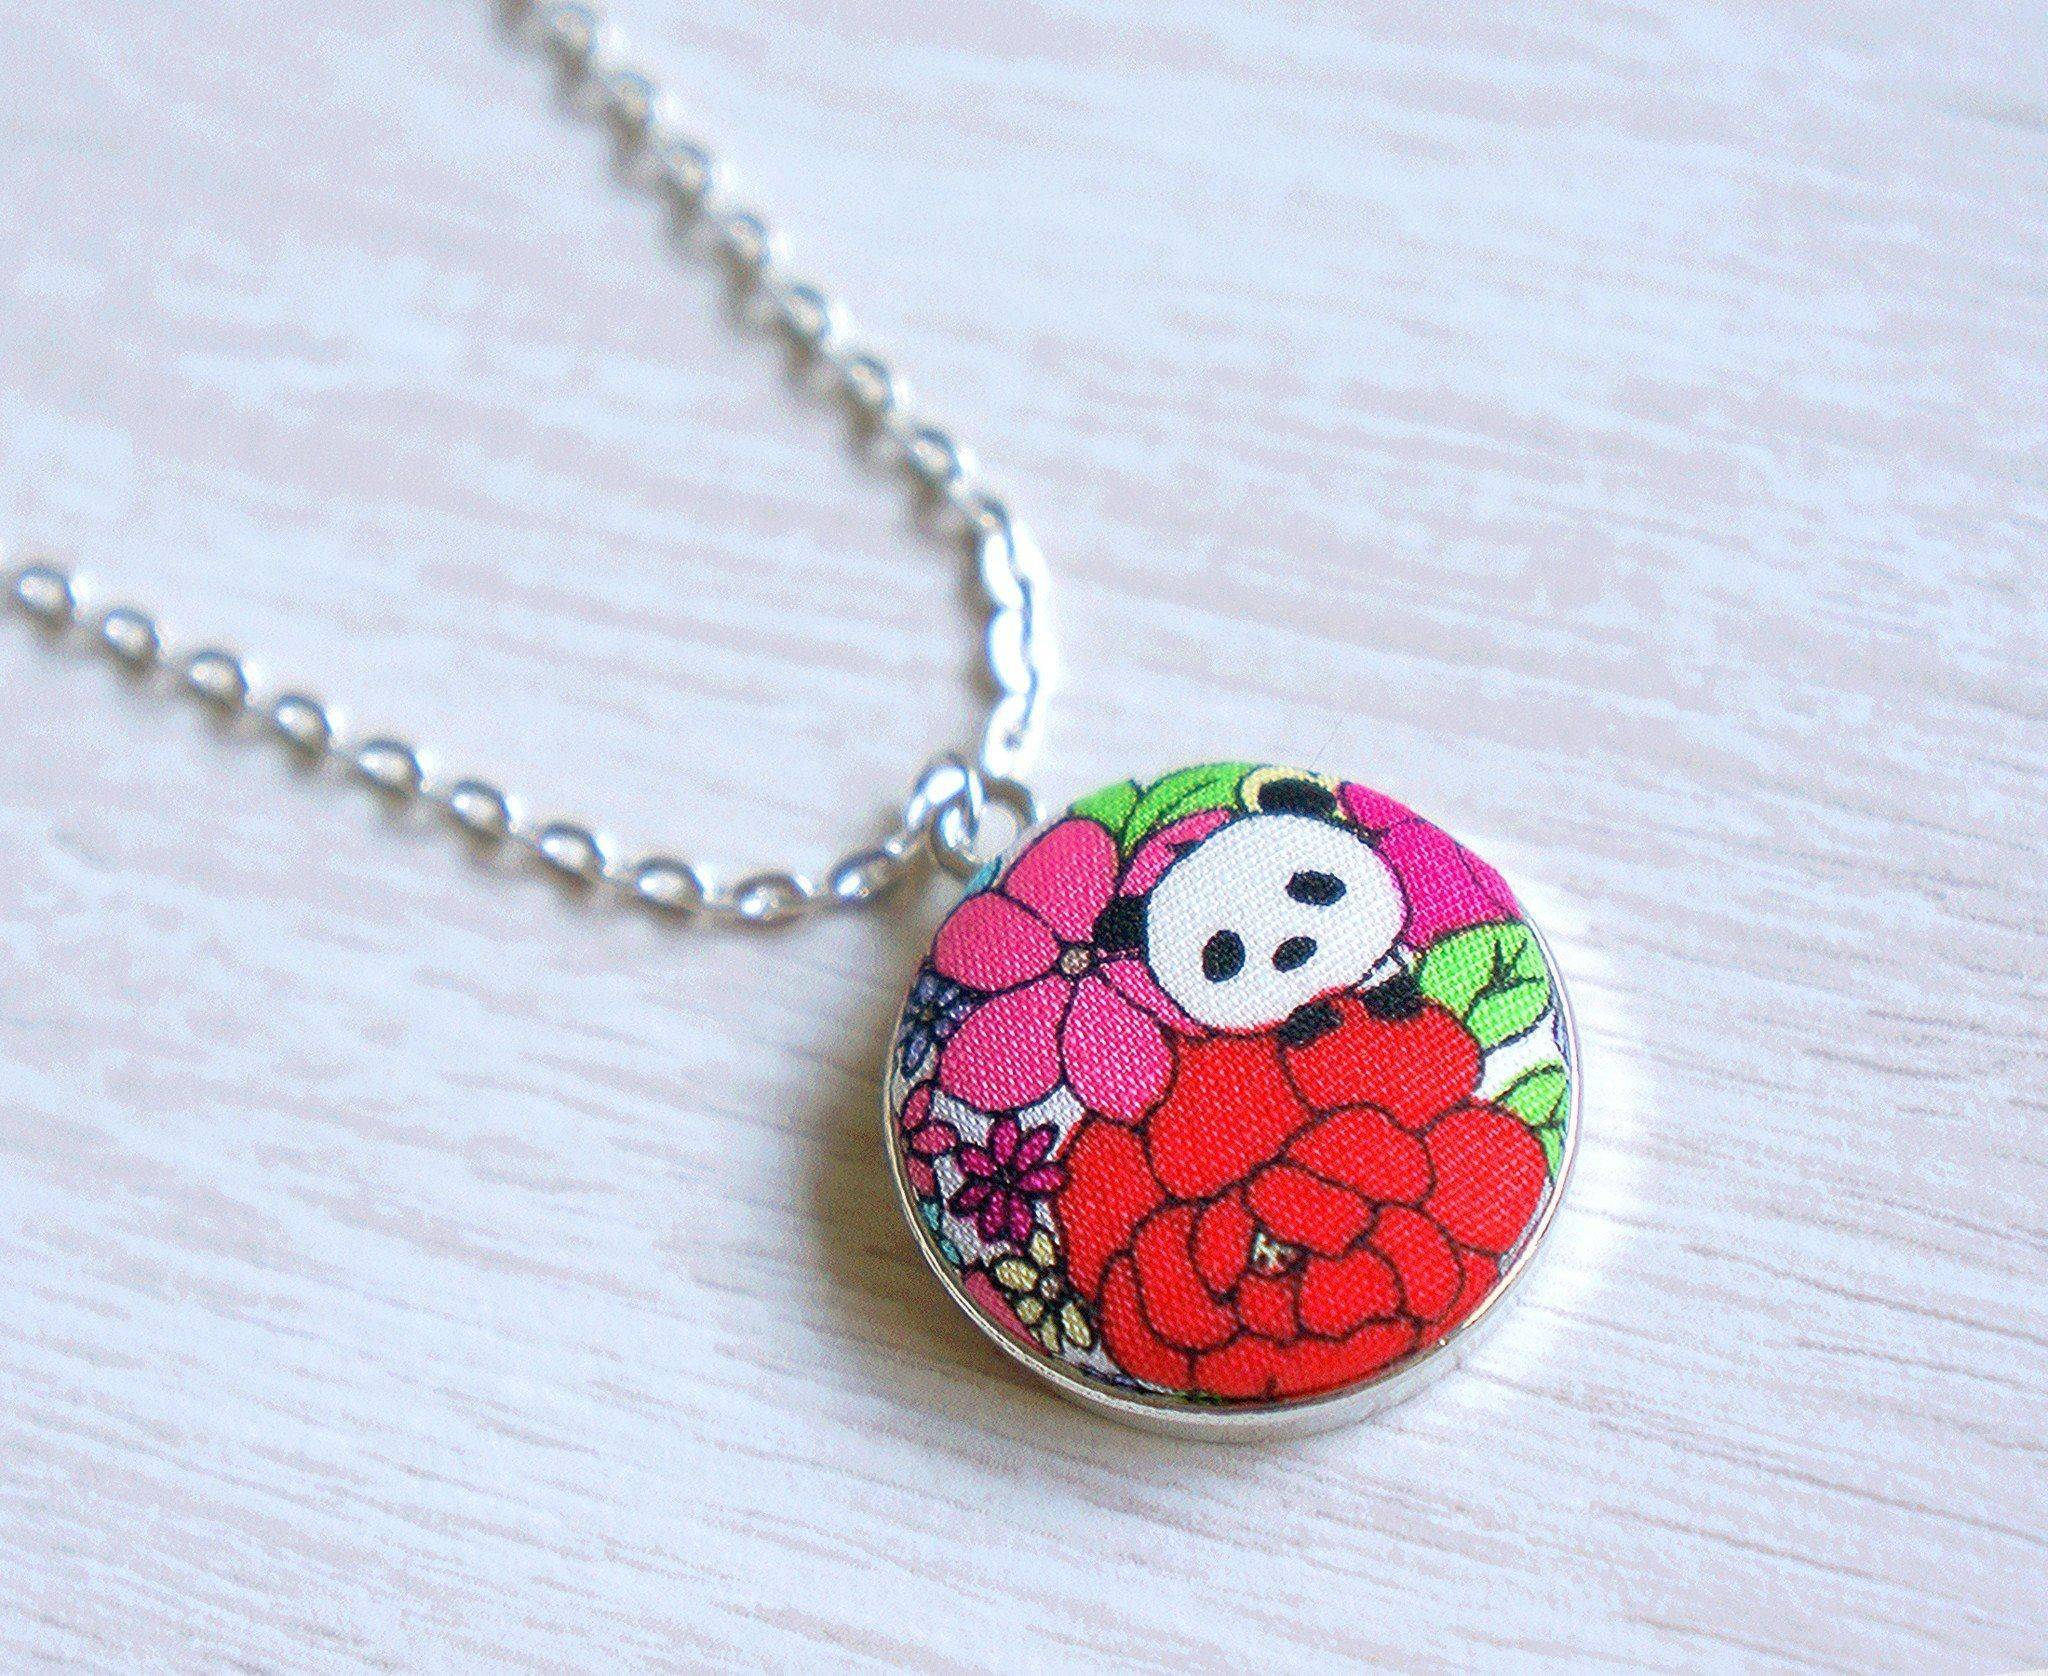 Kazumi Panda Handmade Fabric Button Necklace - Necklaces - Paperdaise Accessories - Naiise